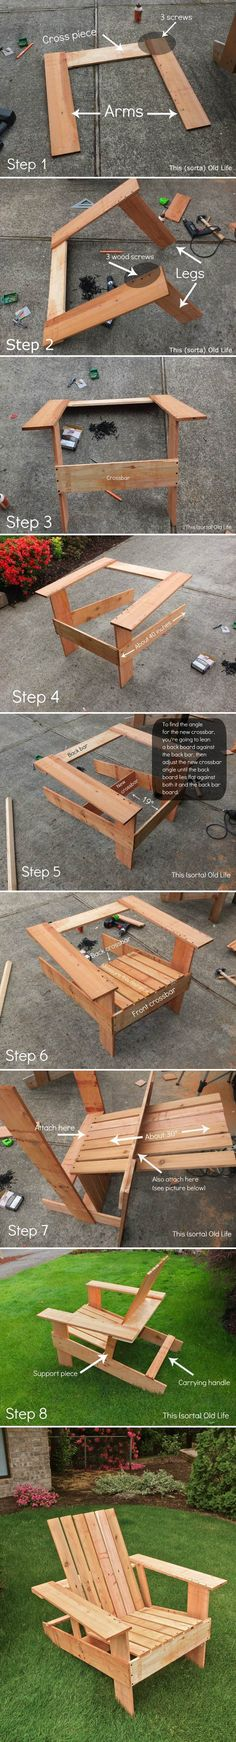 DIY Adirondack Chair - Thehomesteadingboards.com